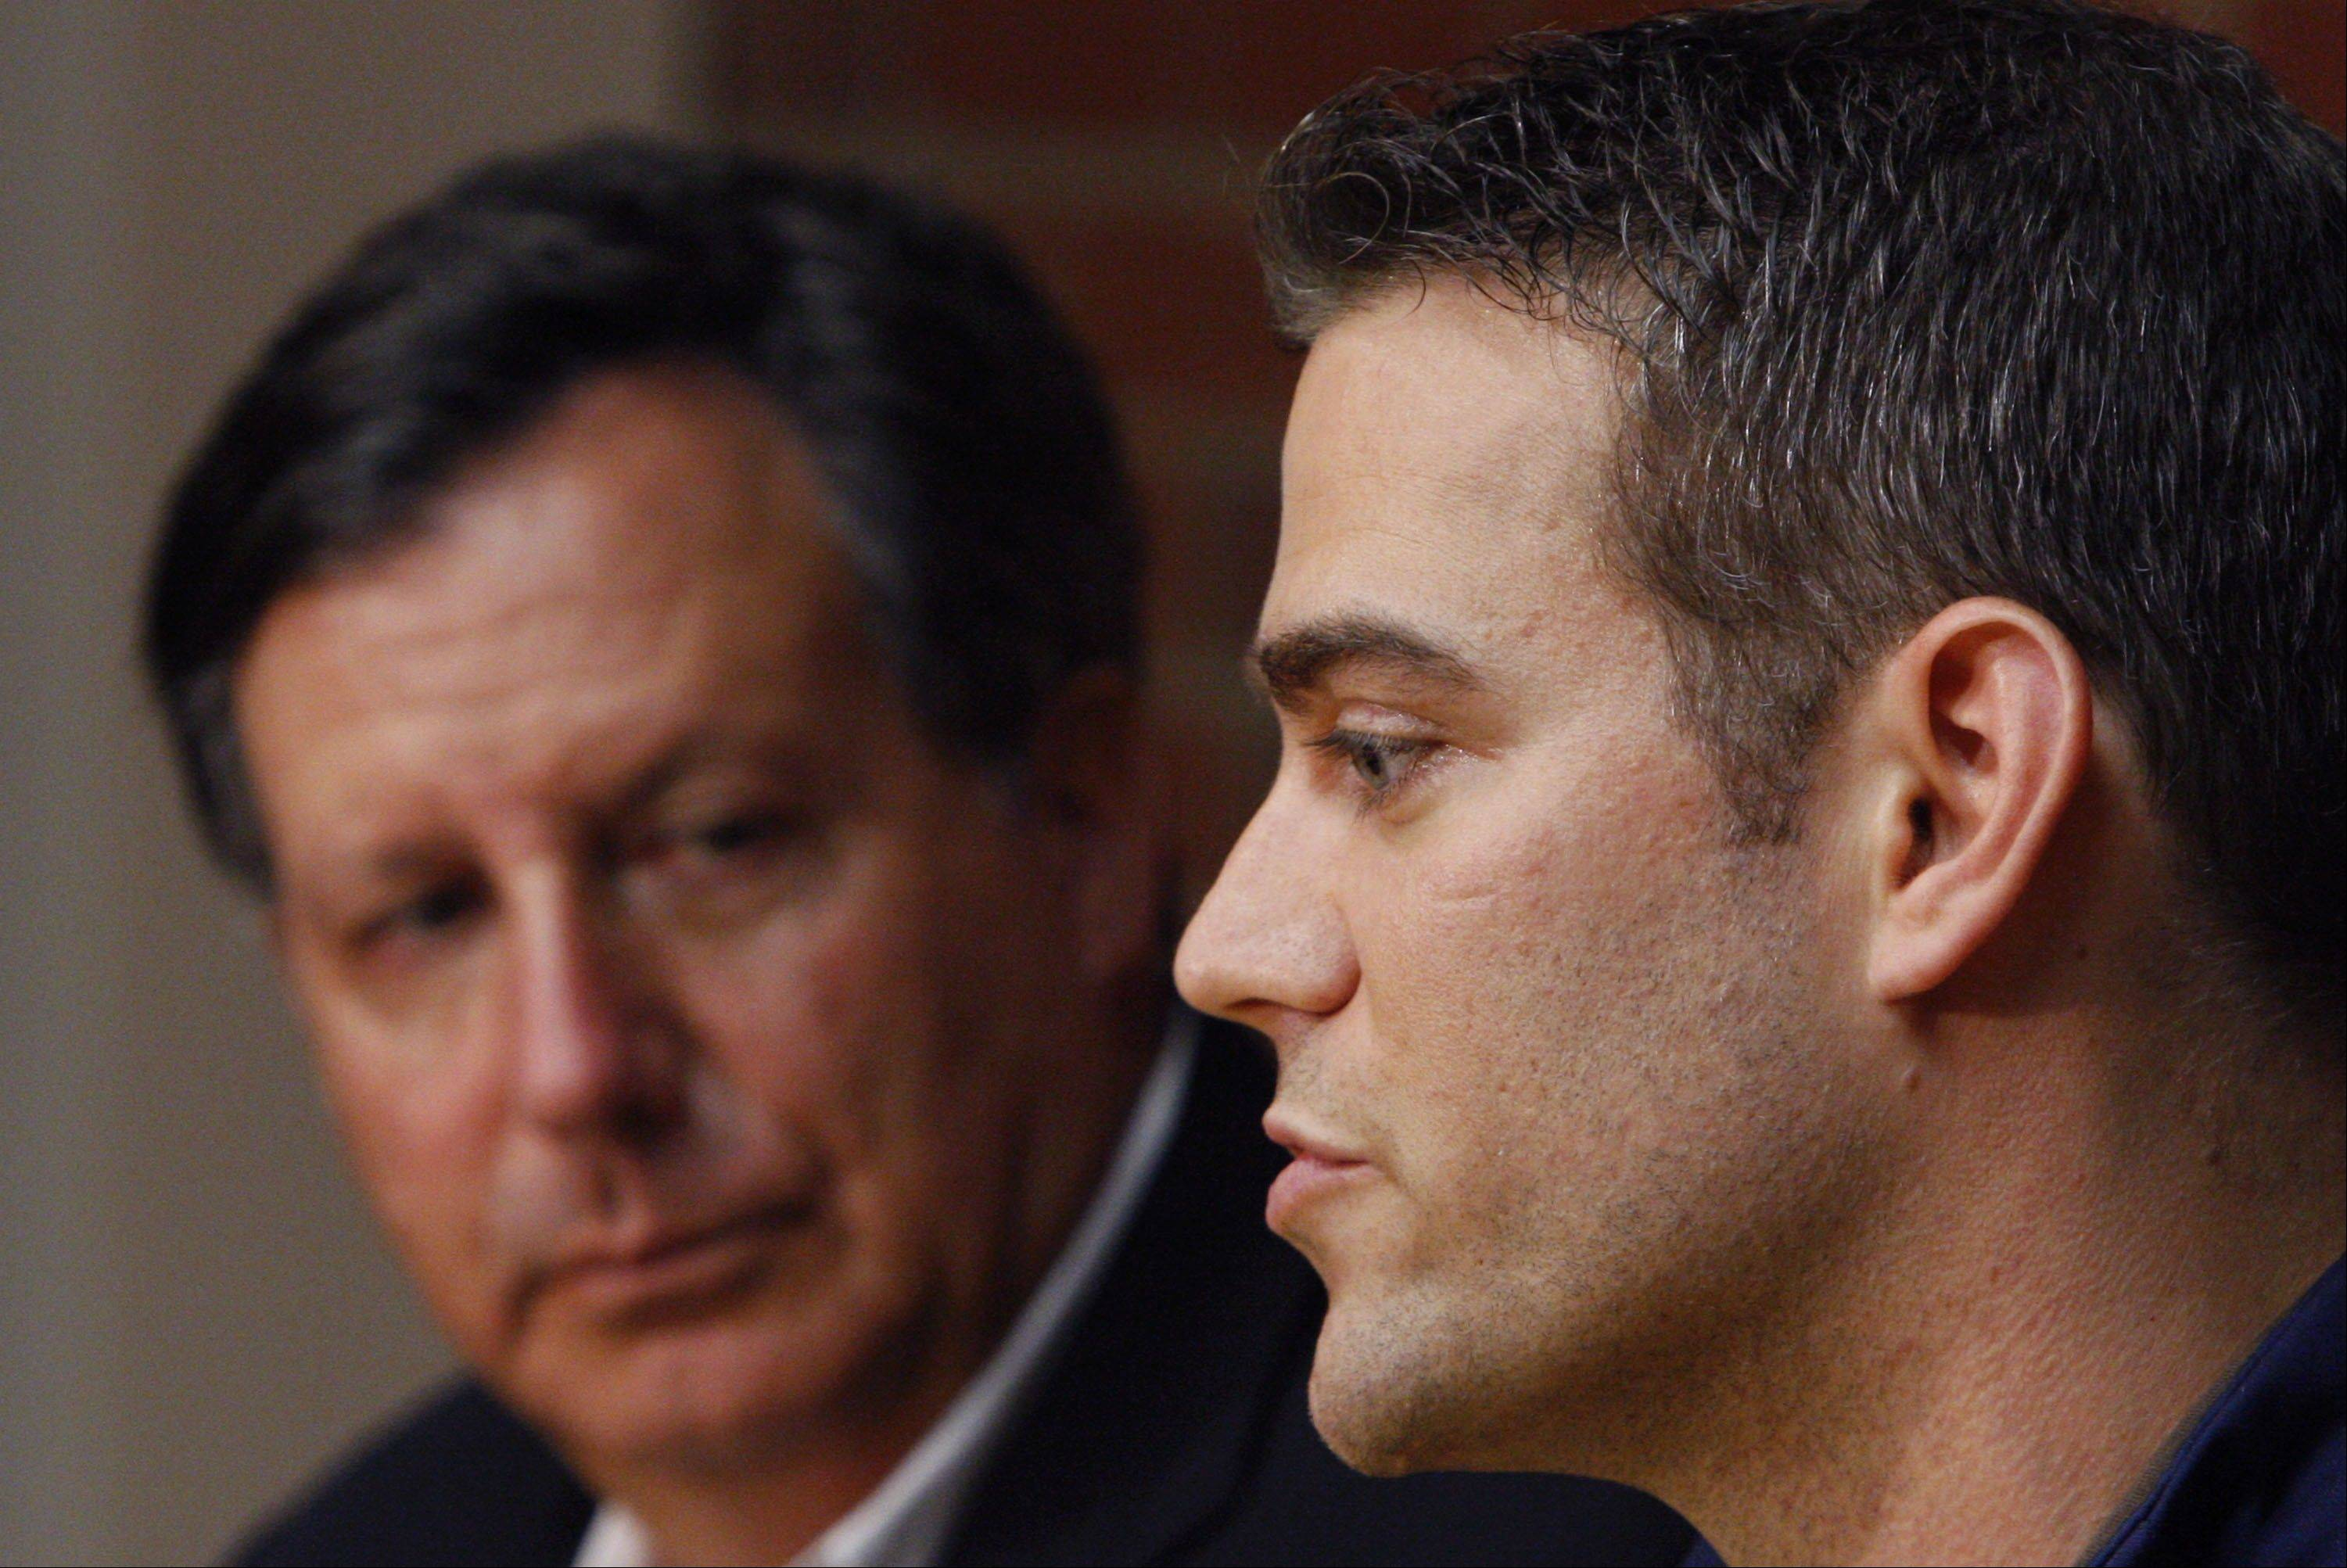 Theo Epstein speaks during a news conference in Boston at the end of the season. Epstein reportedly has signed a 5-year contract with the Cubs for $20 million, according to ESPN's Buster Olney.